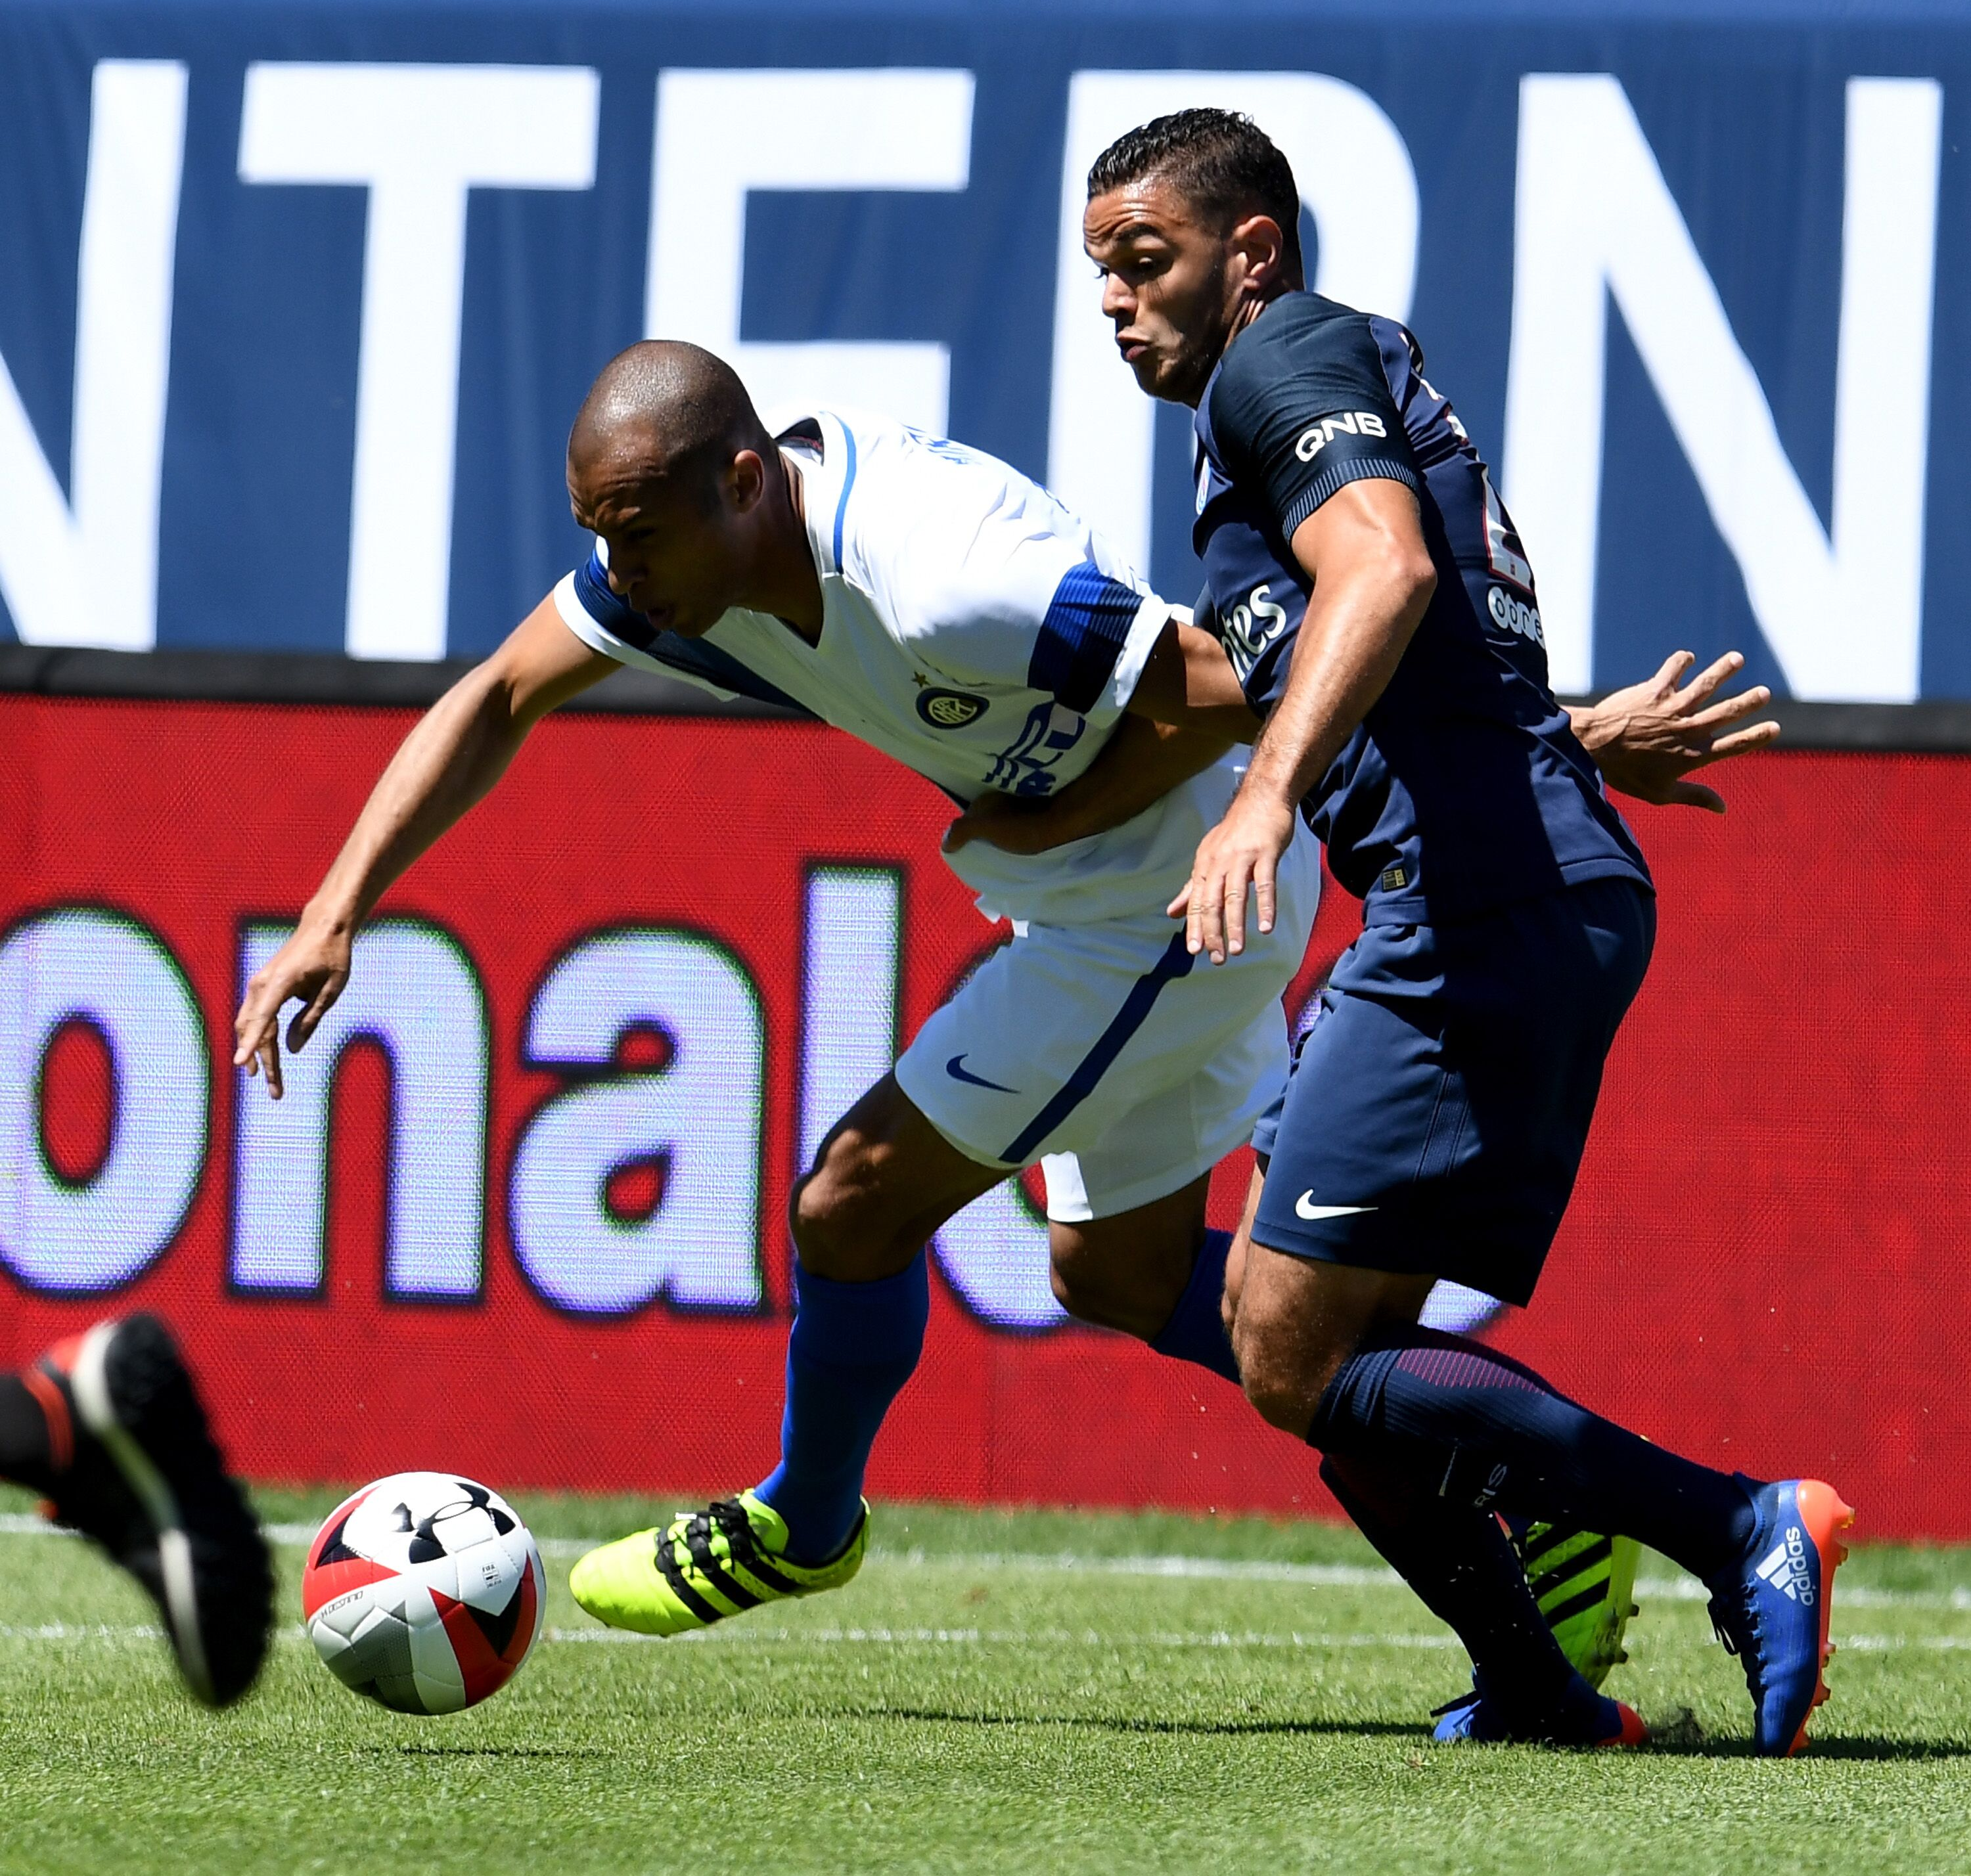 International Champions Cup: Finding Value In The International Champions Cup